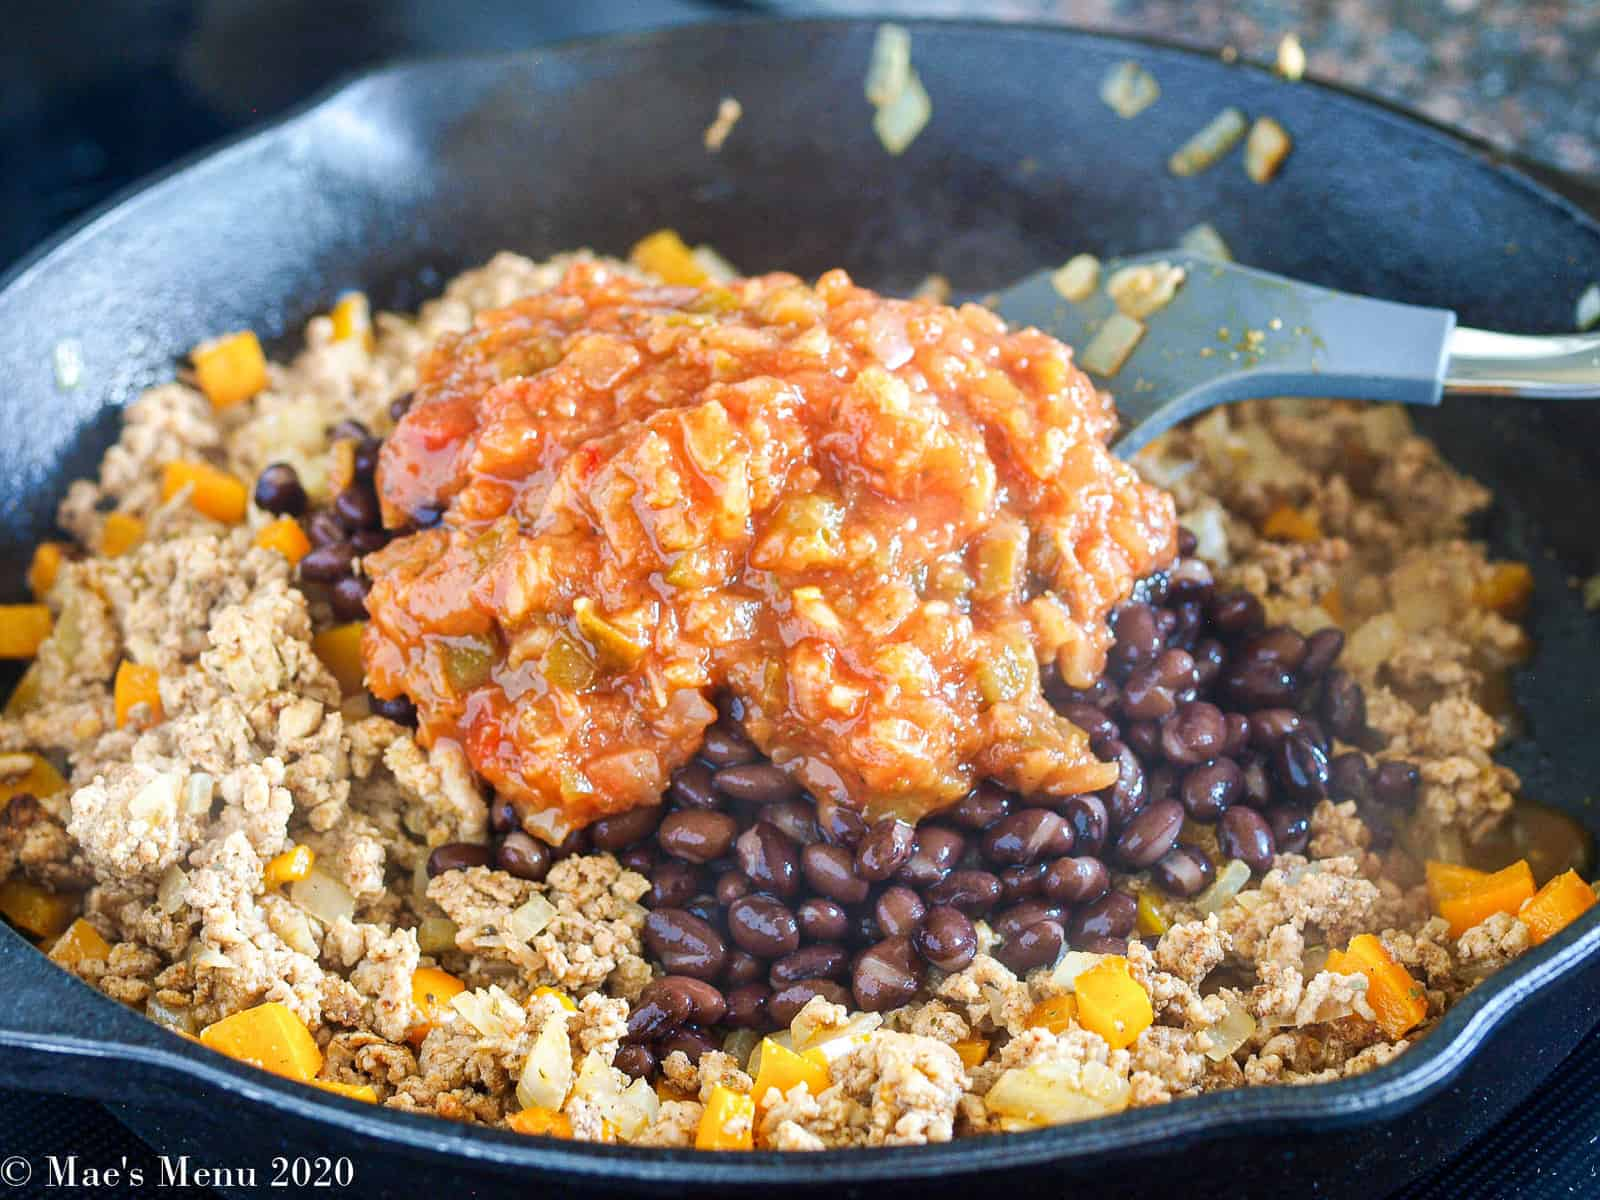 Adding the salsa and beans to the skillet with the turkey